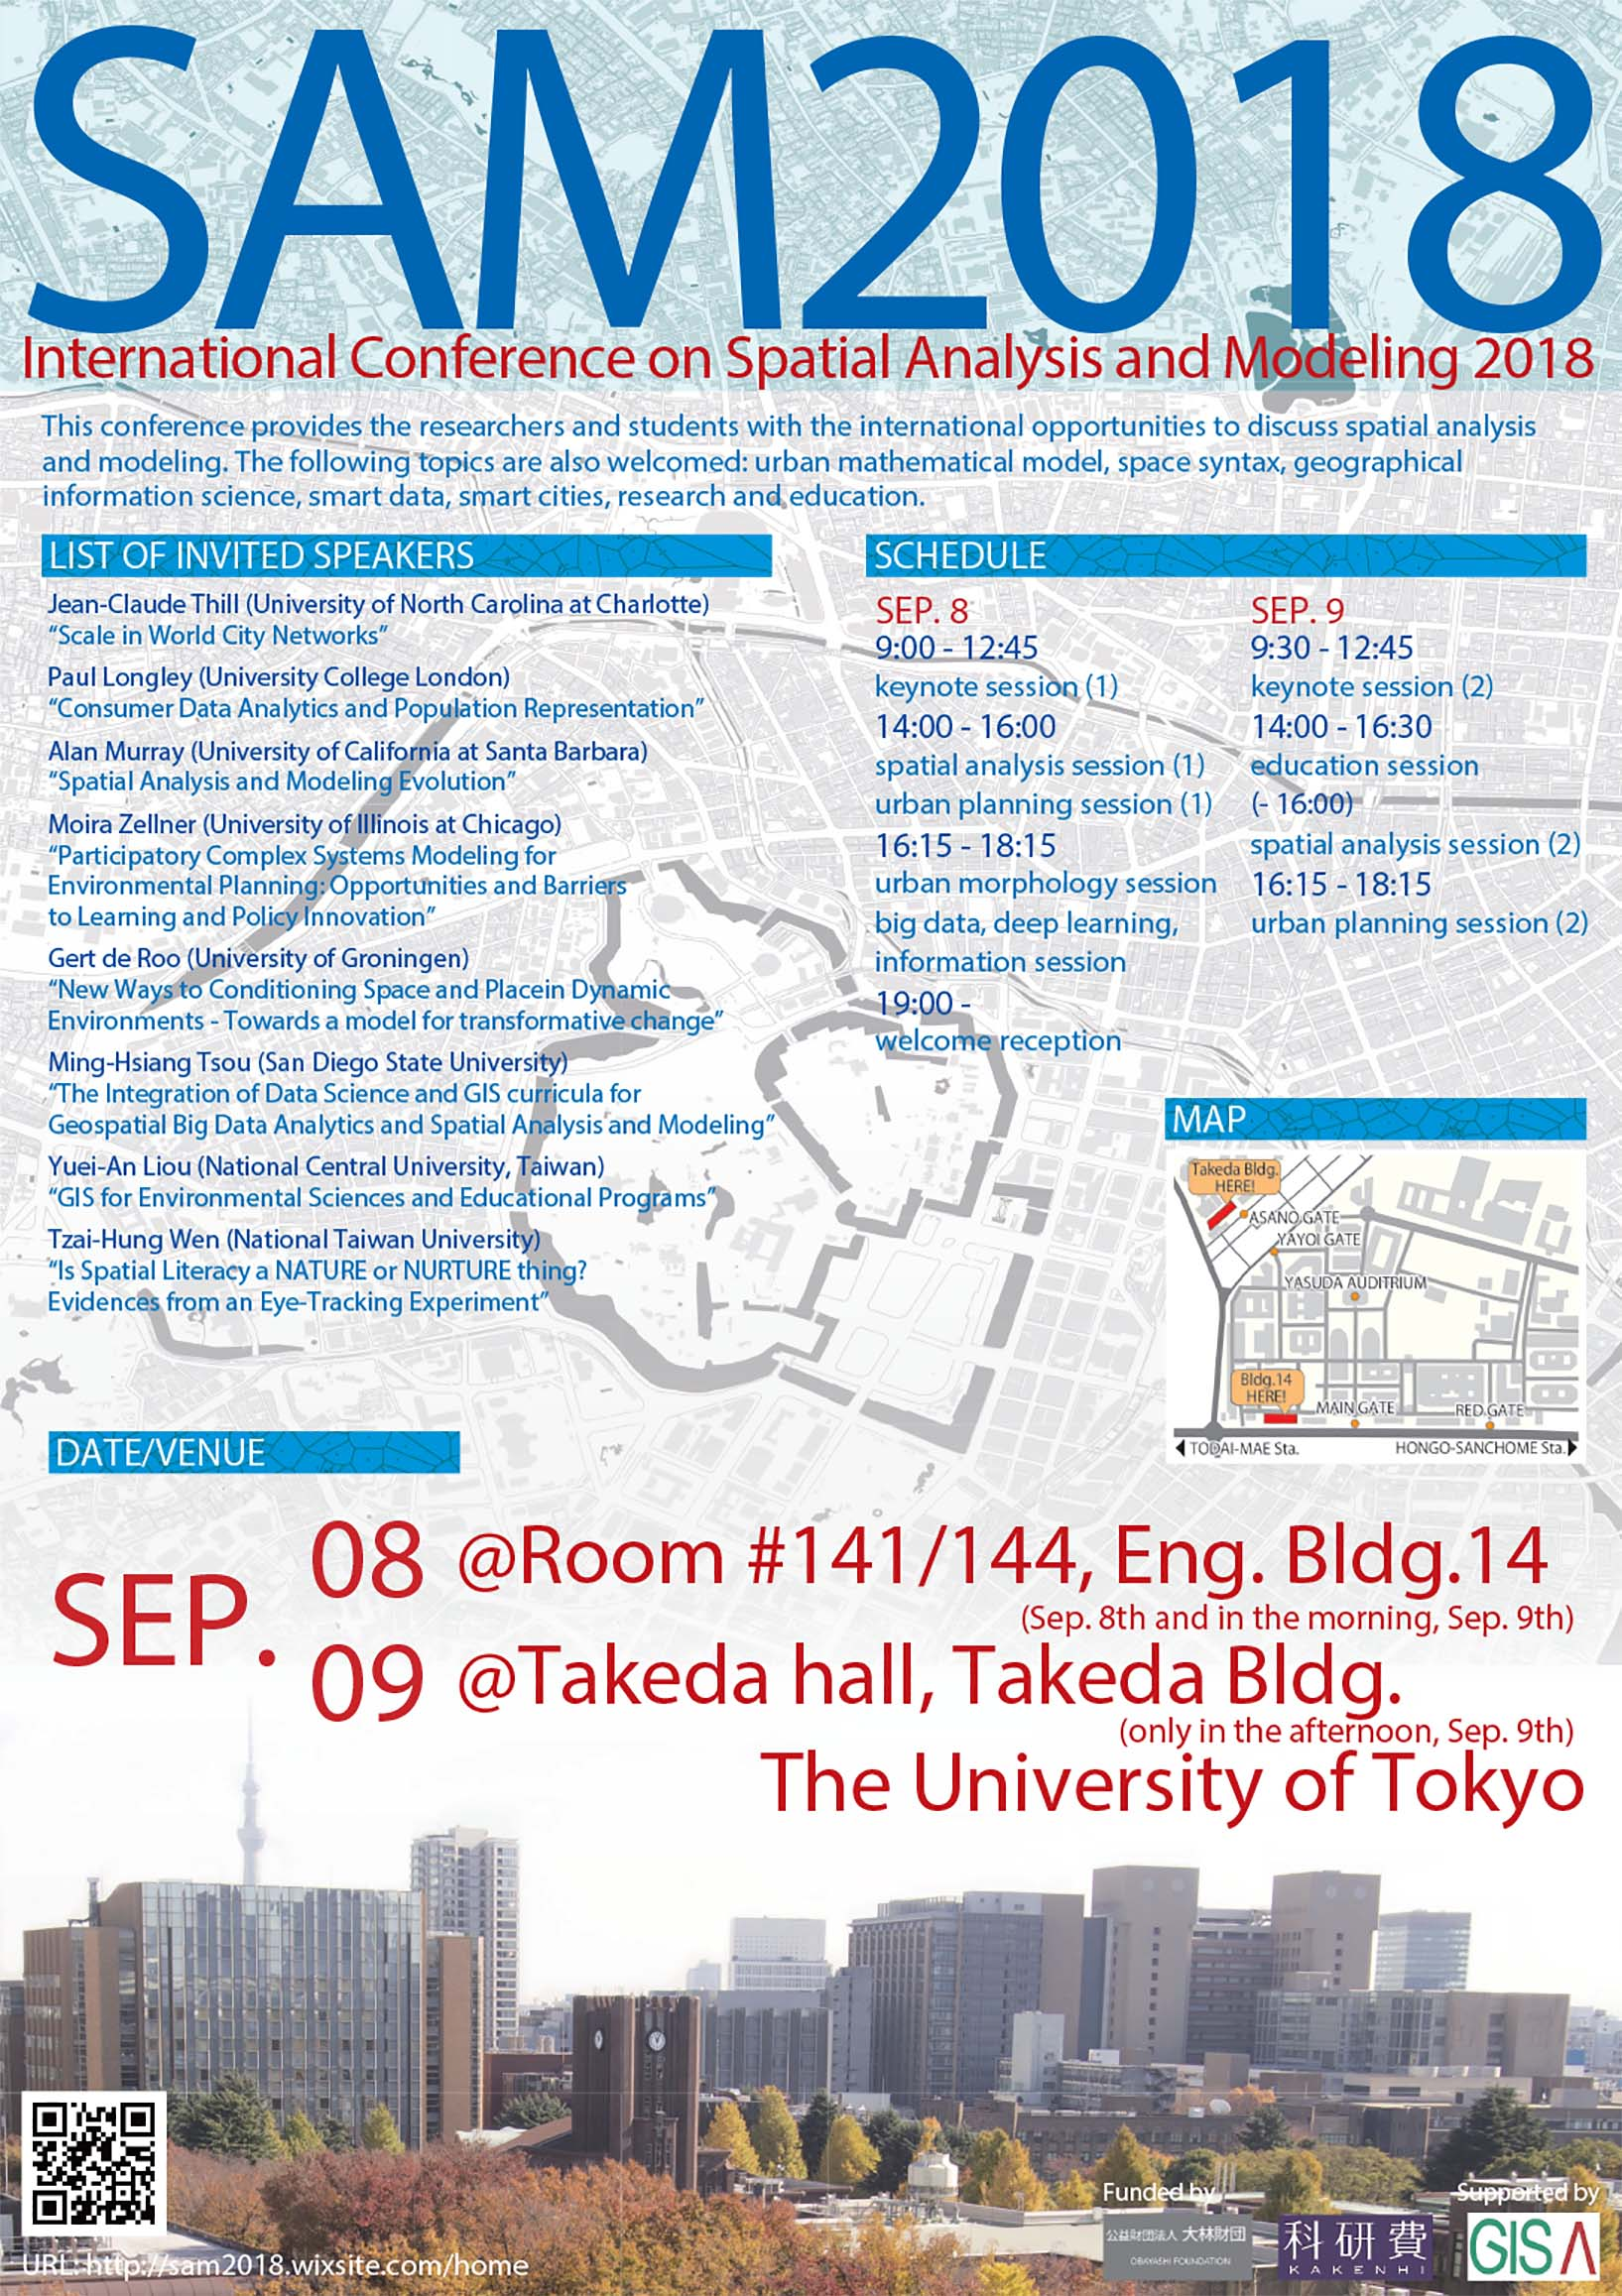 Poster advertisement from the SAM2018 Conference